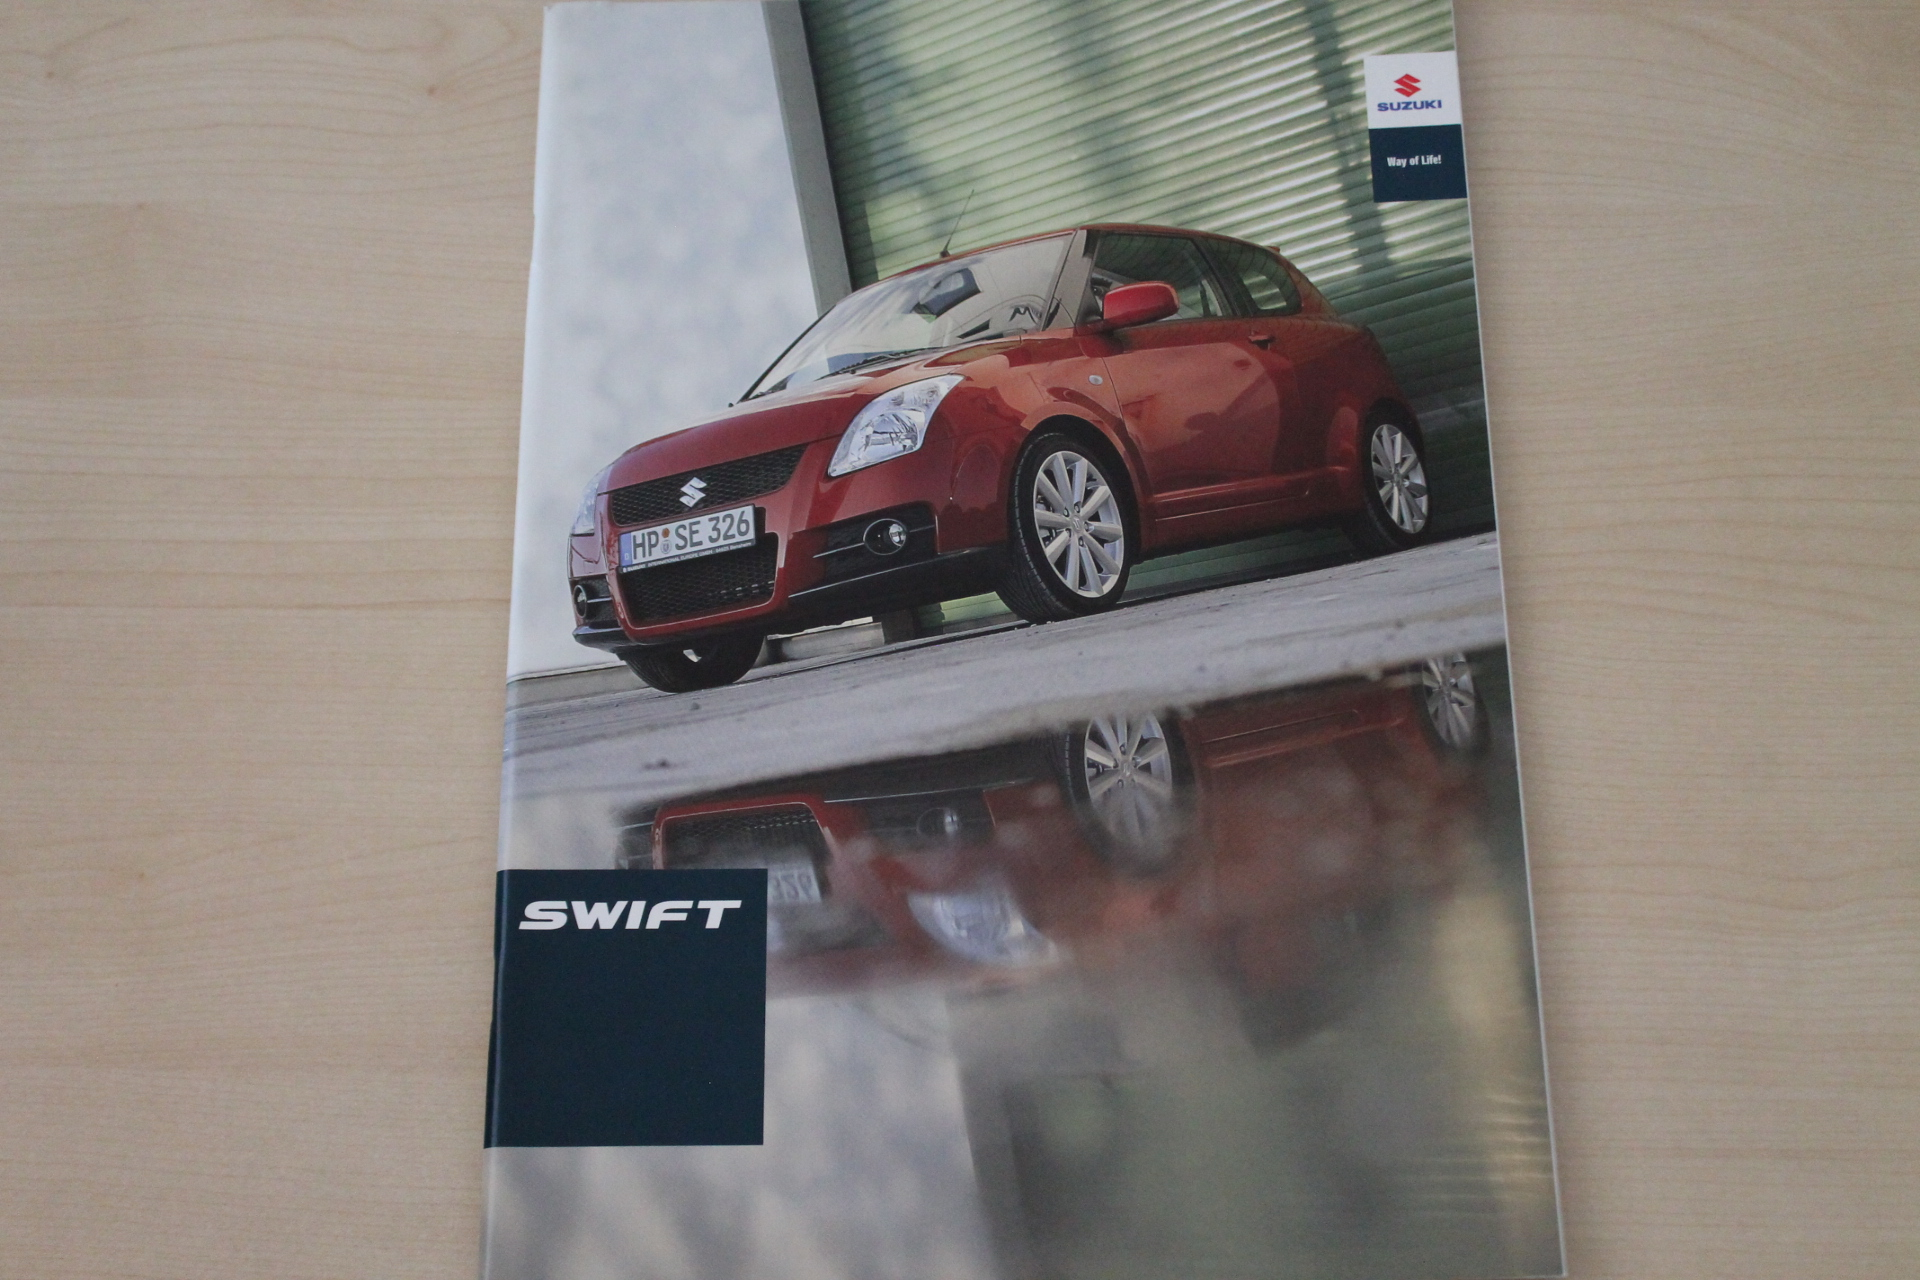 Suzuki Swift Prospekt 04/2008